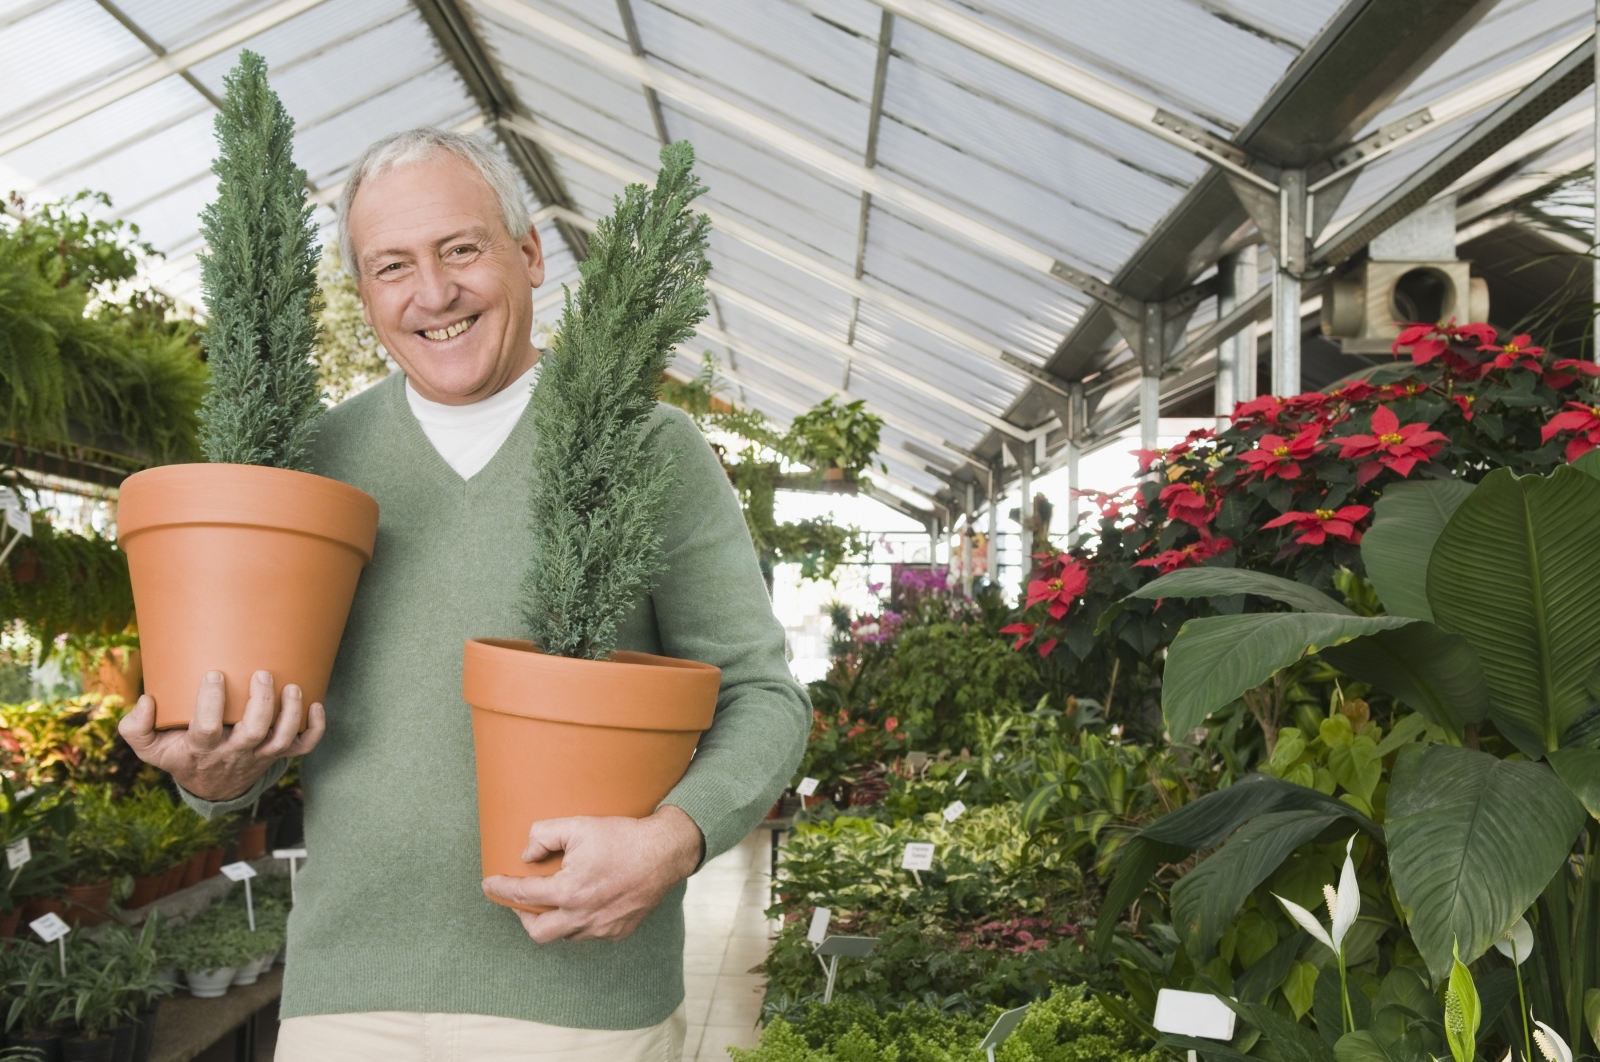 """Photo credit: 285_2690922 by PS Productions: """"Man holding potted plants in a garden center"""""""